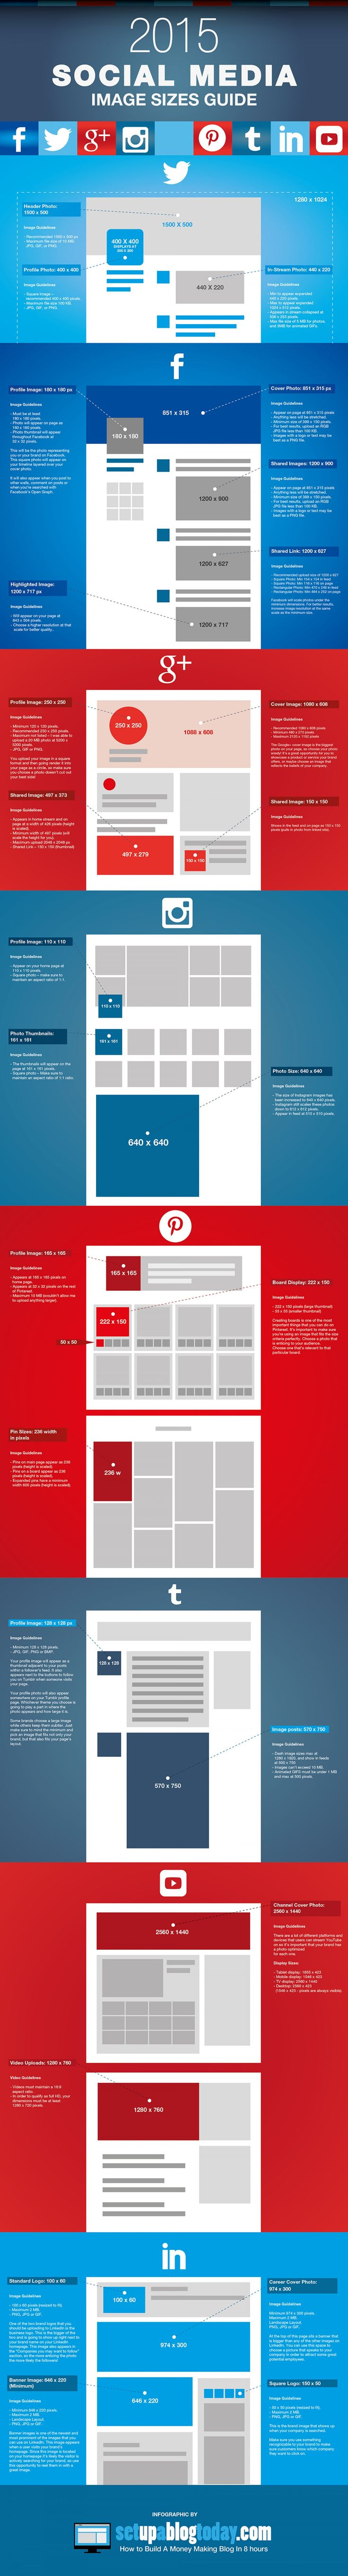 Image sizes guide for social media 2015